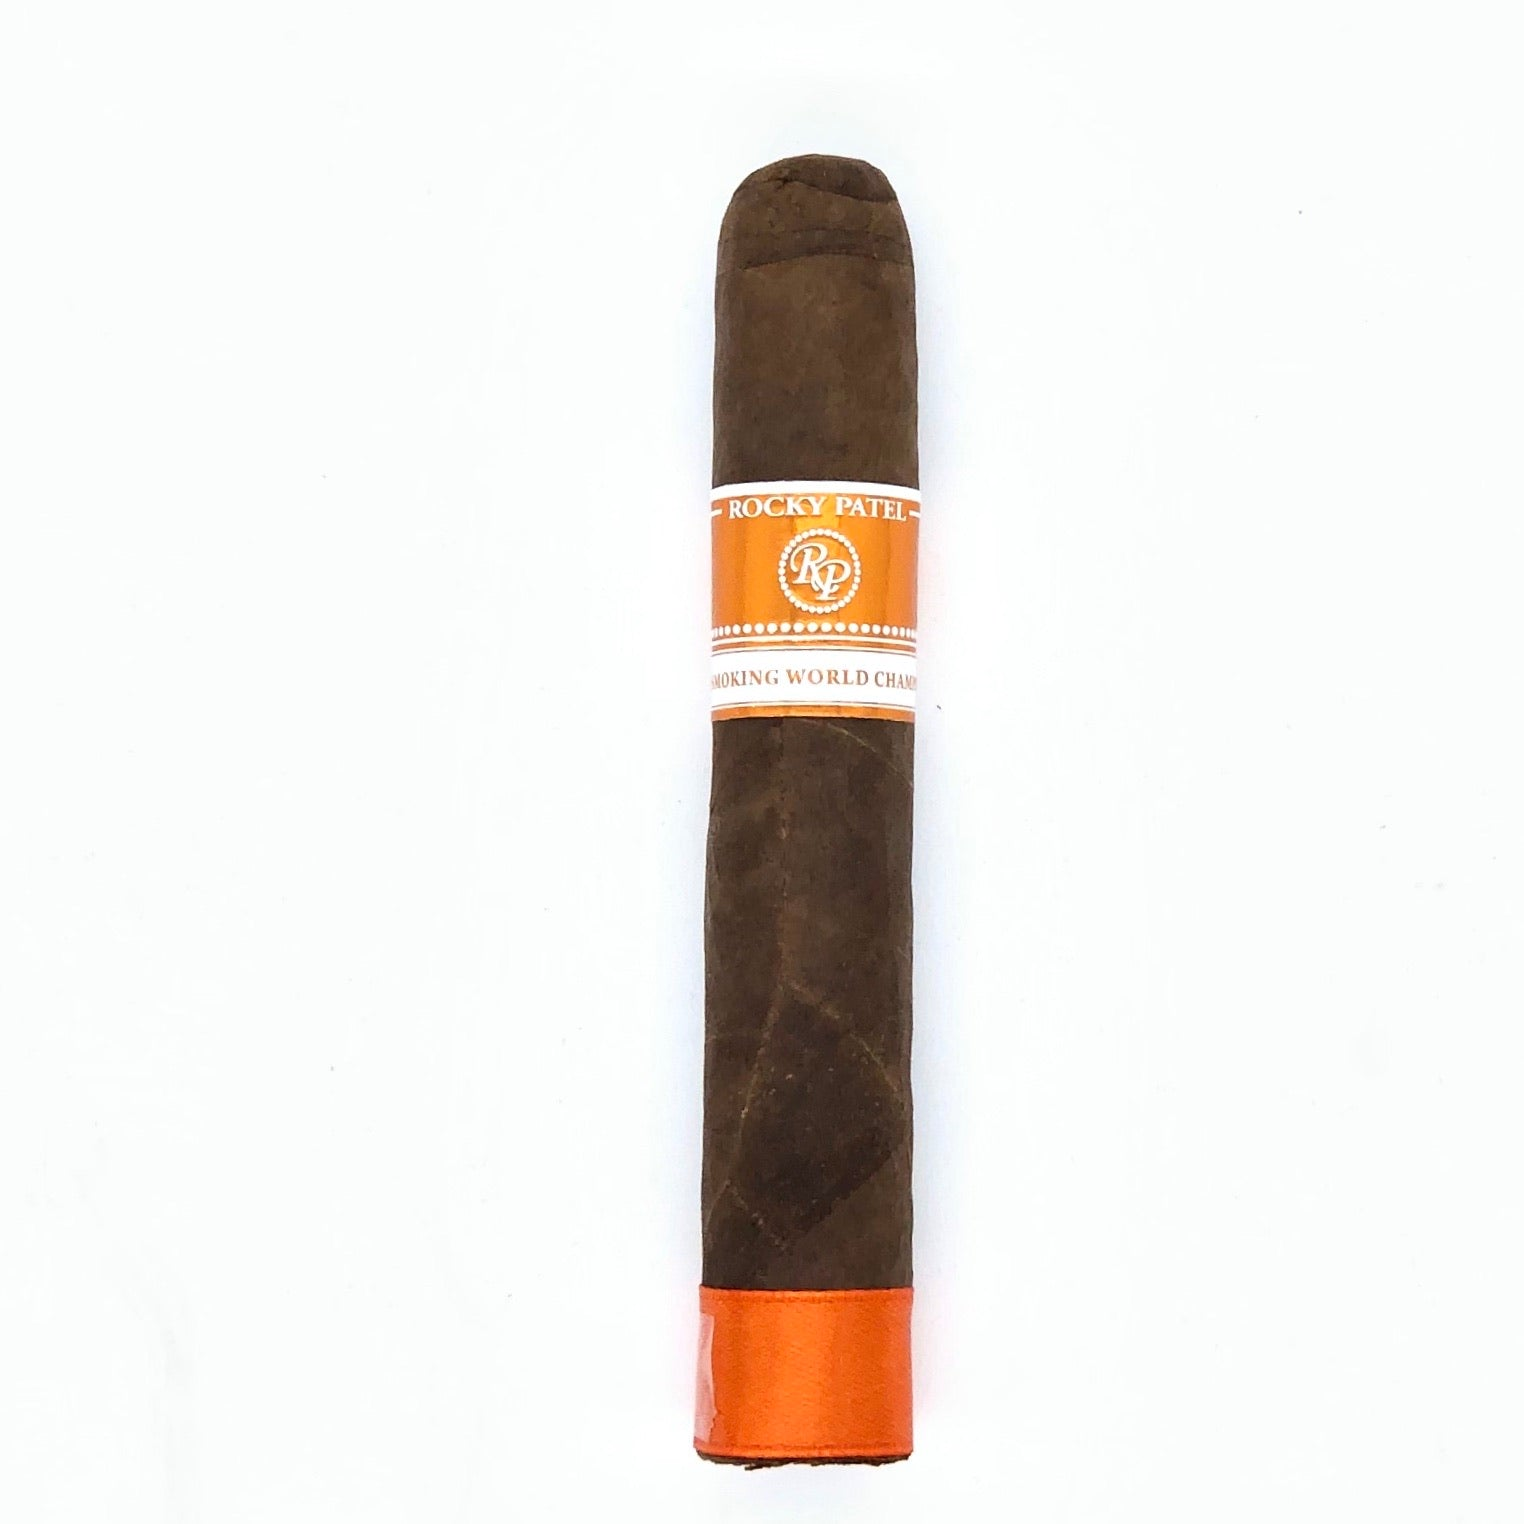 Rocky Patel Cigar Smoking World Championship Robusto